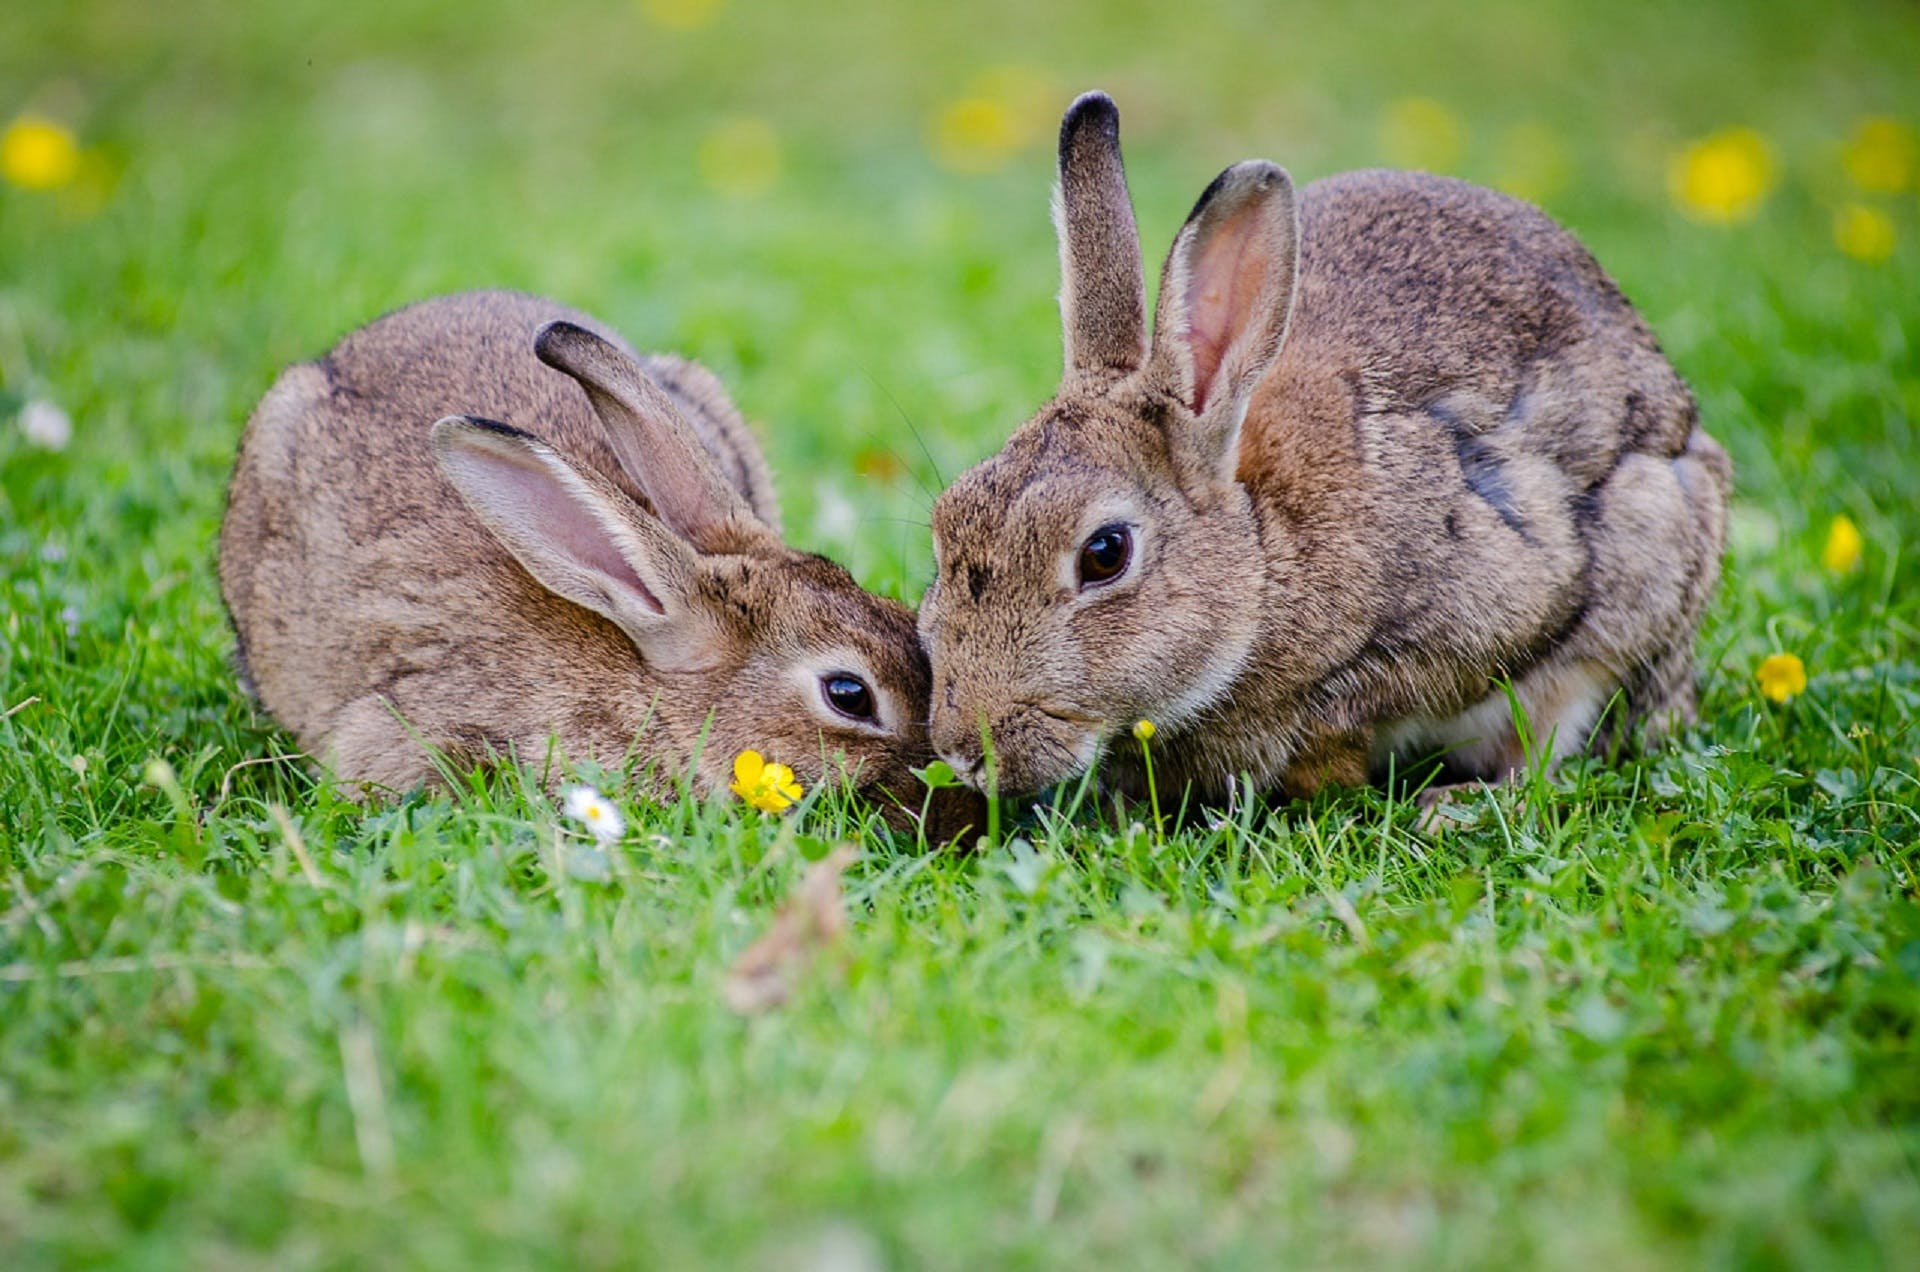 2 Rabbits Eating Grass at Daytime